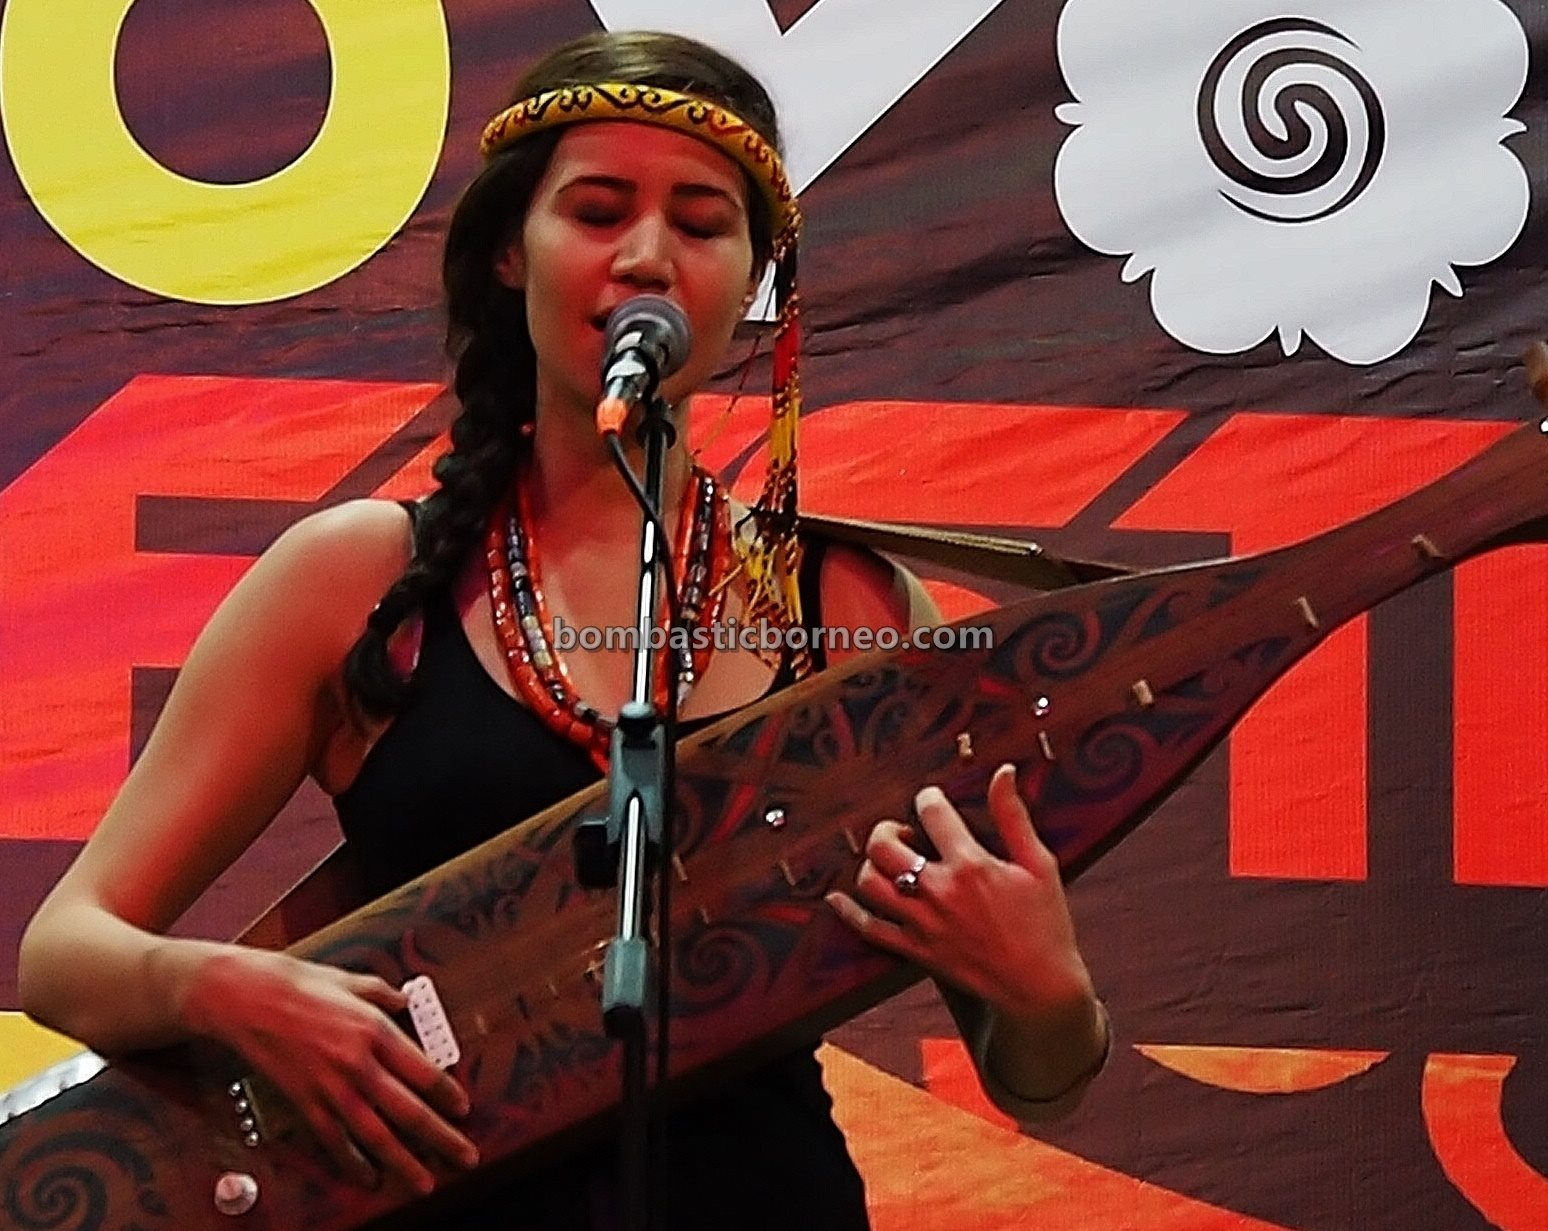 Youth Sape Festival, traditional, backpackers, culture, native, indigenous, orang ulu, guitar, Tourism, tourist attraction, travel guide, cross border, 探索婆罗洲游踪, 砂拉越马来西亚, 原住民沙贝音乐